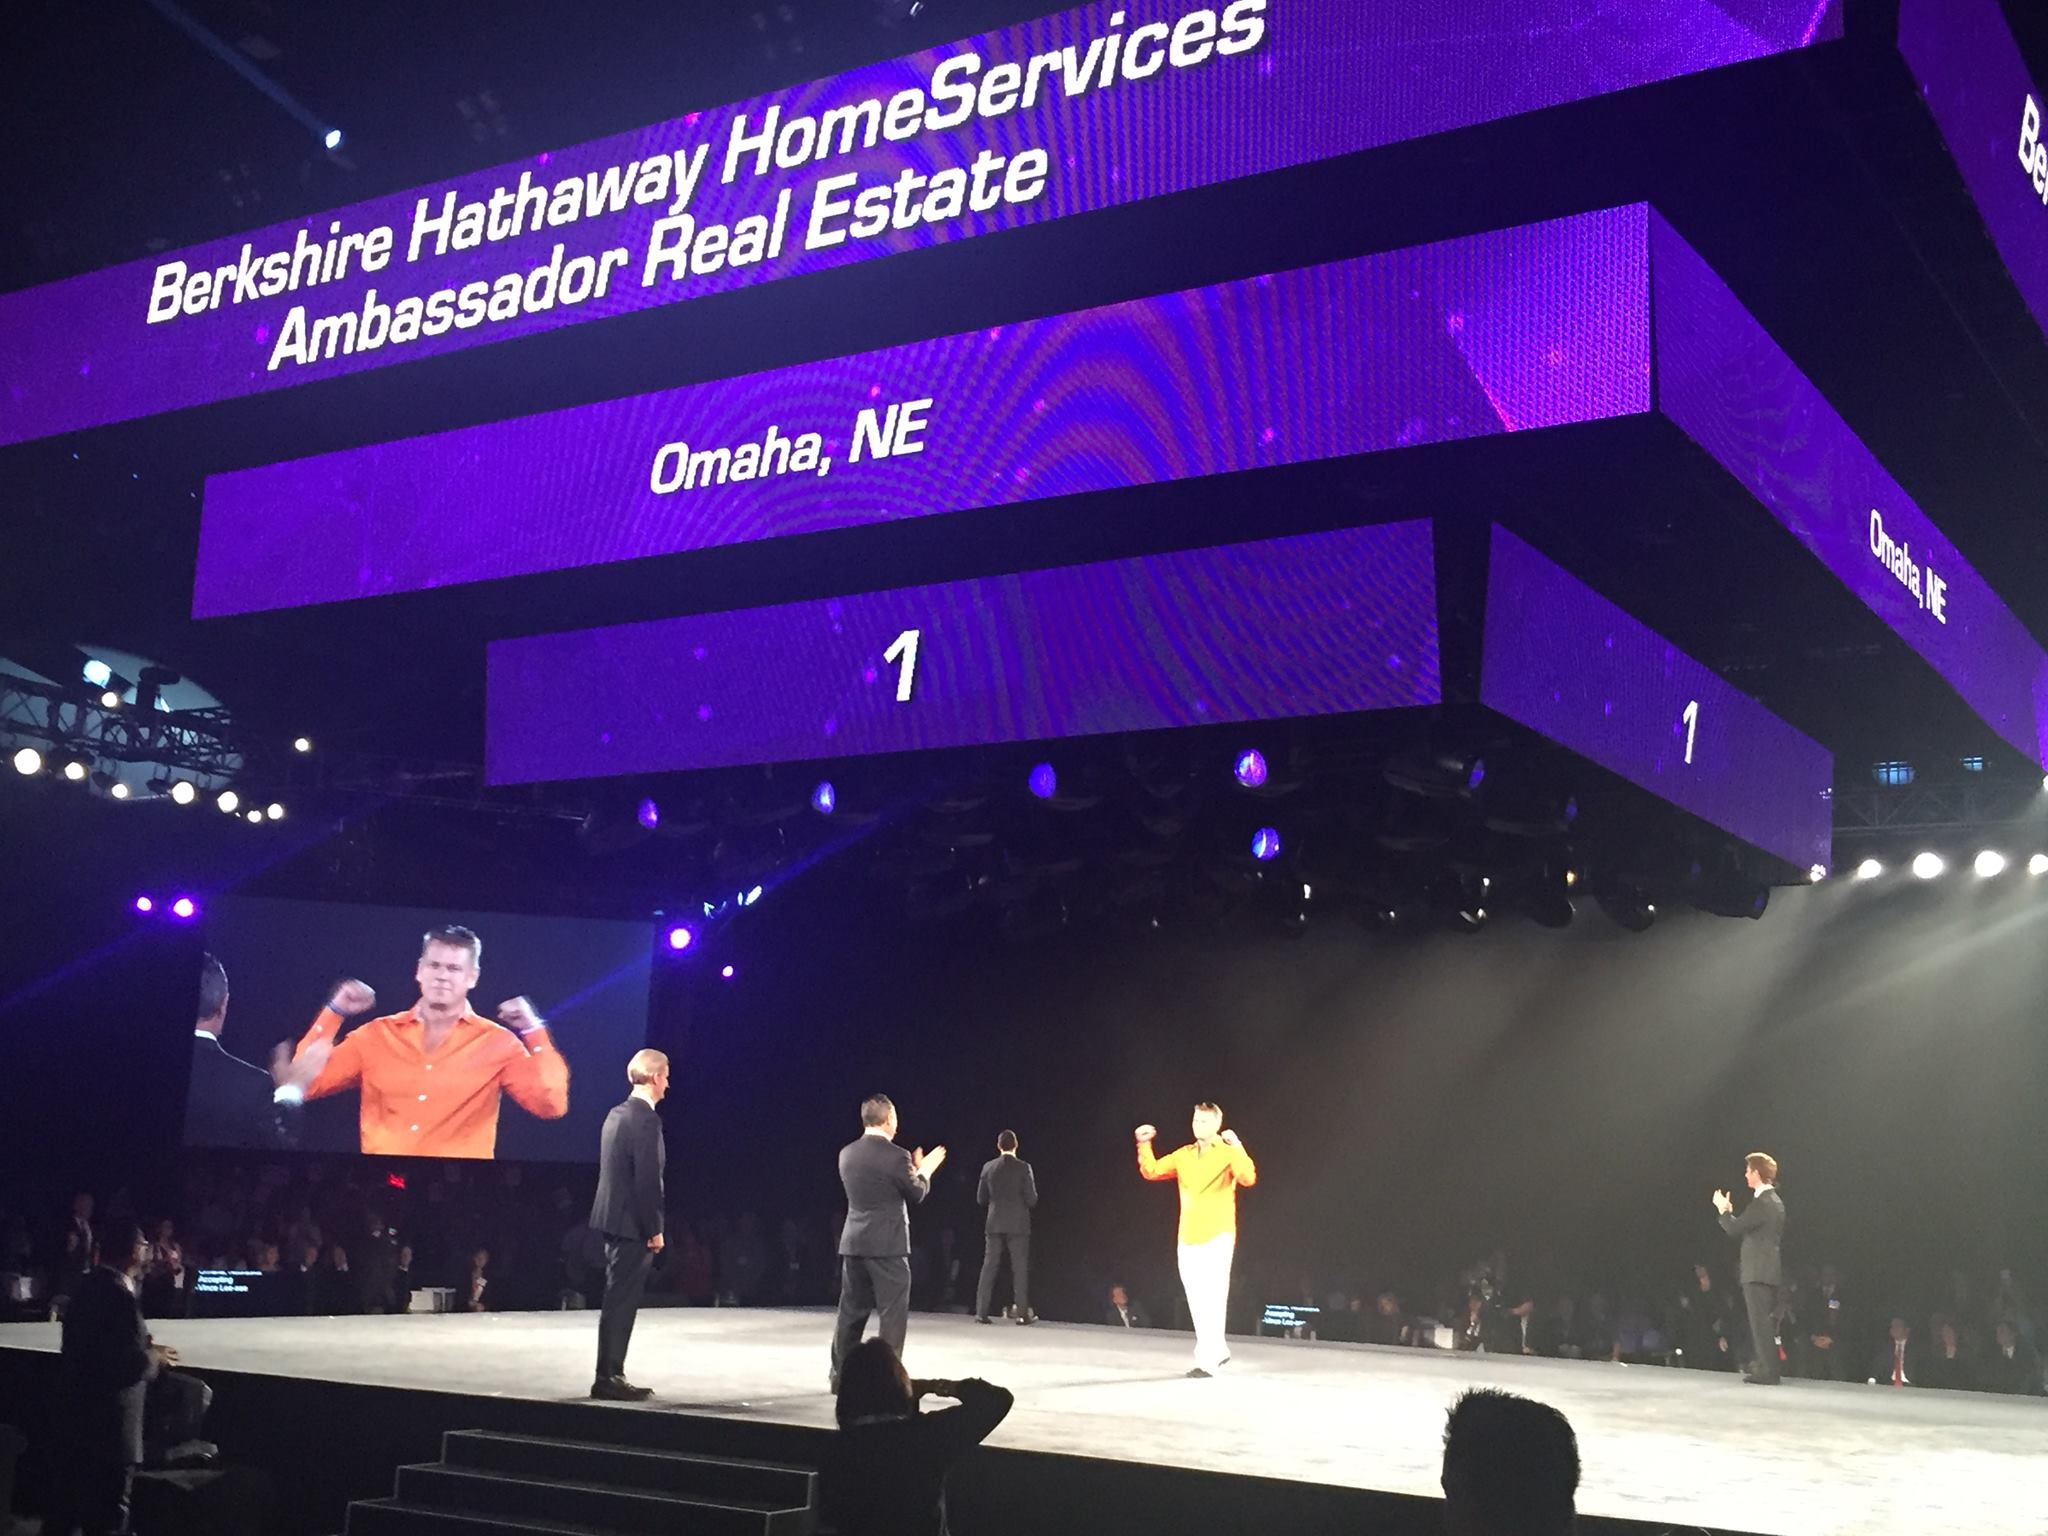 About Berkshire Hathaway Homeservices Ambassador Real Estate Meraki Realty Group